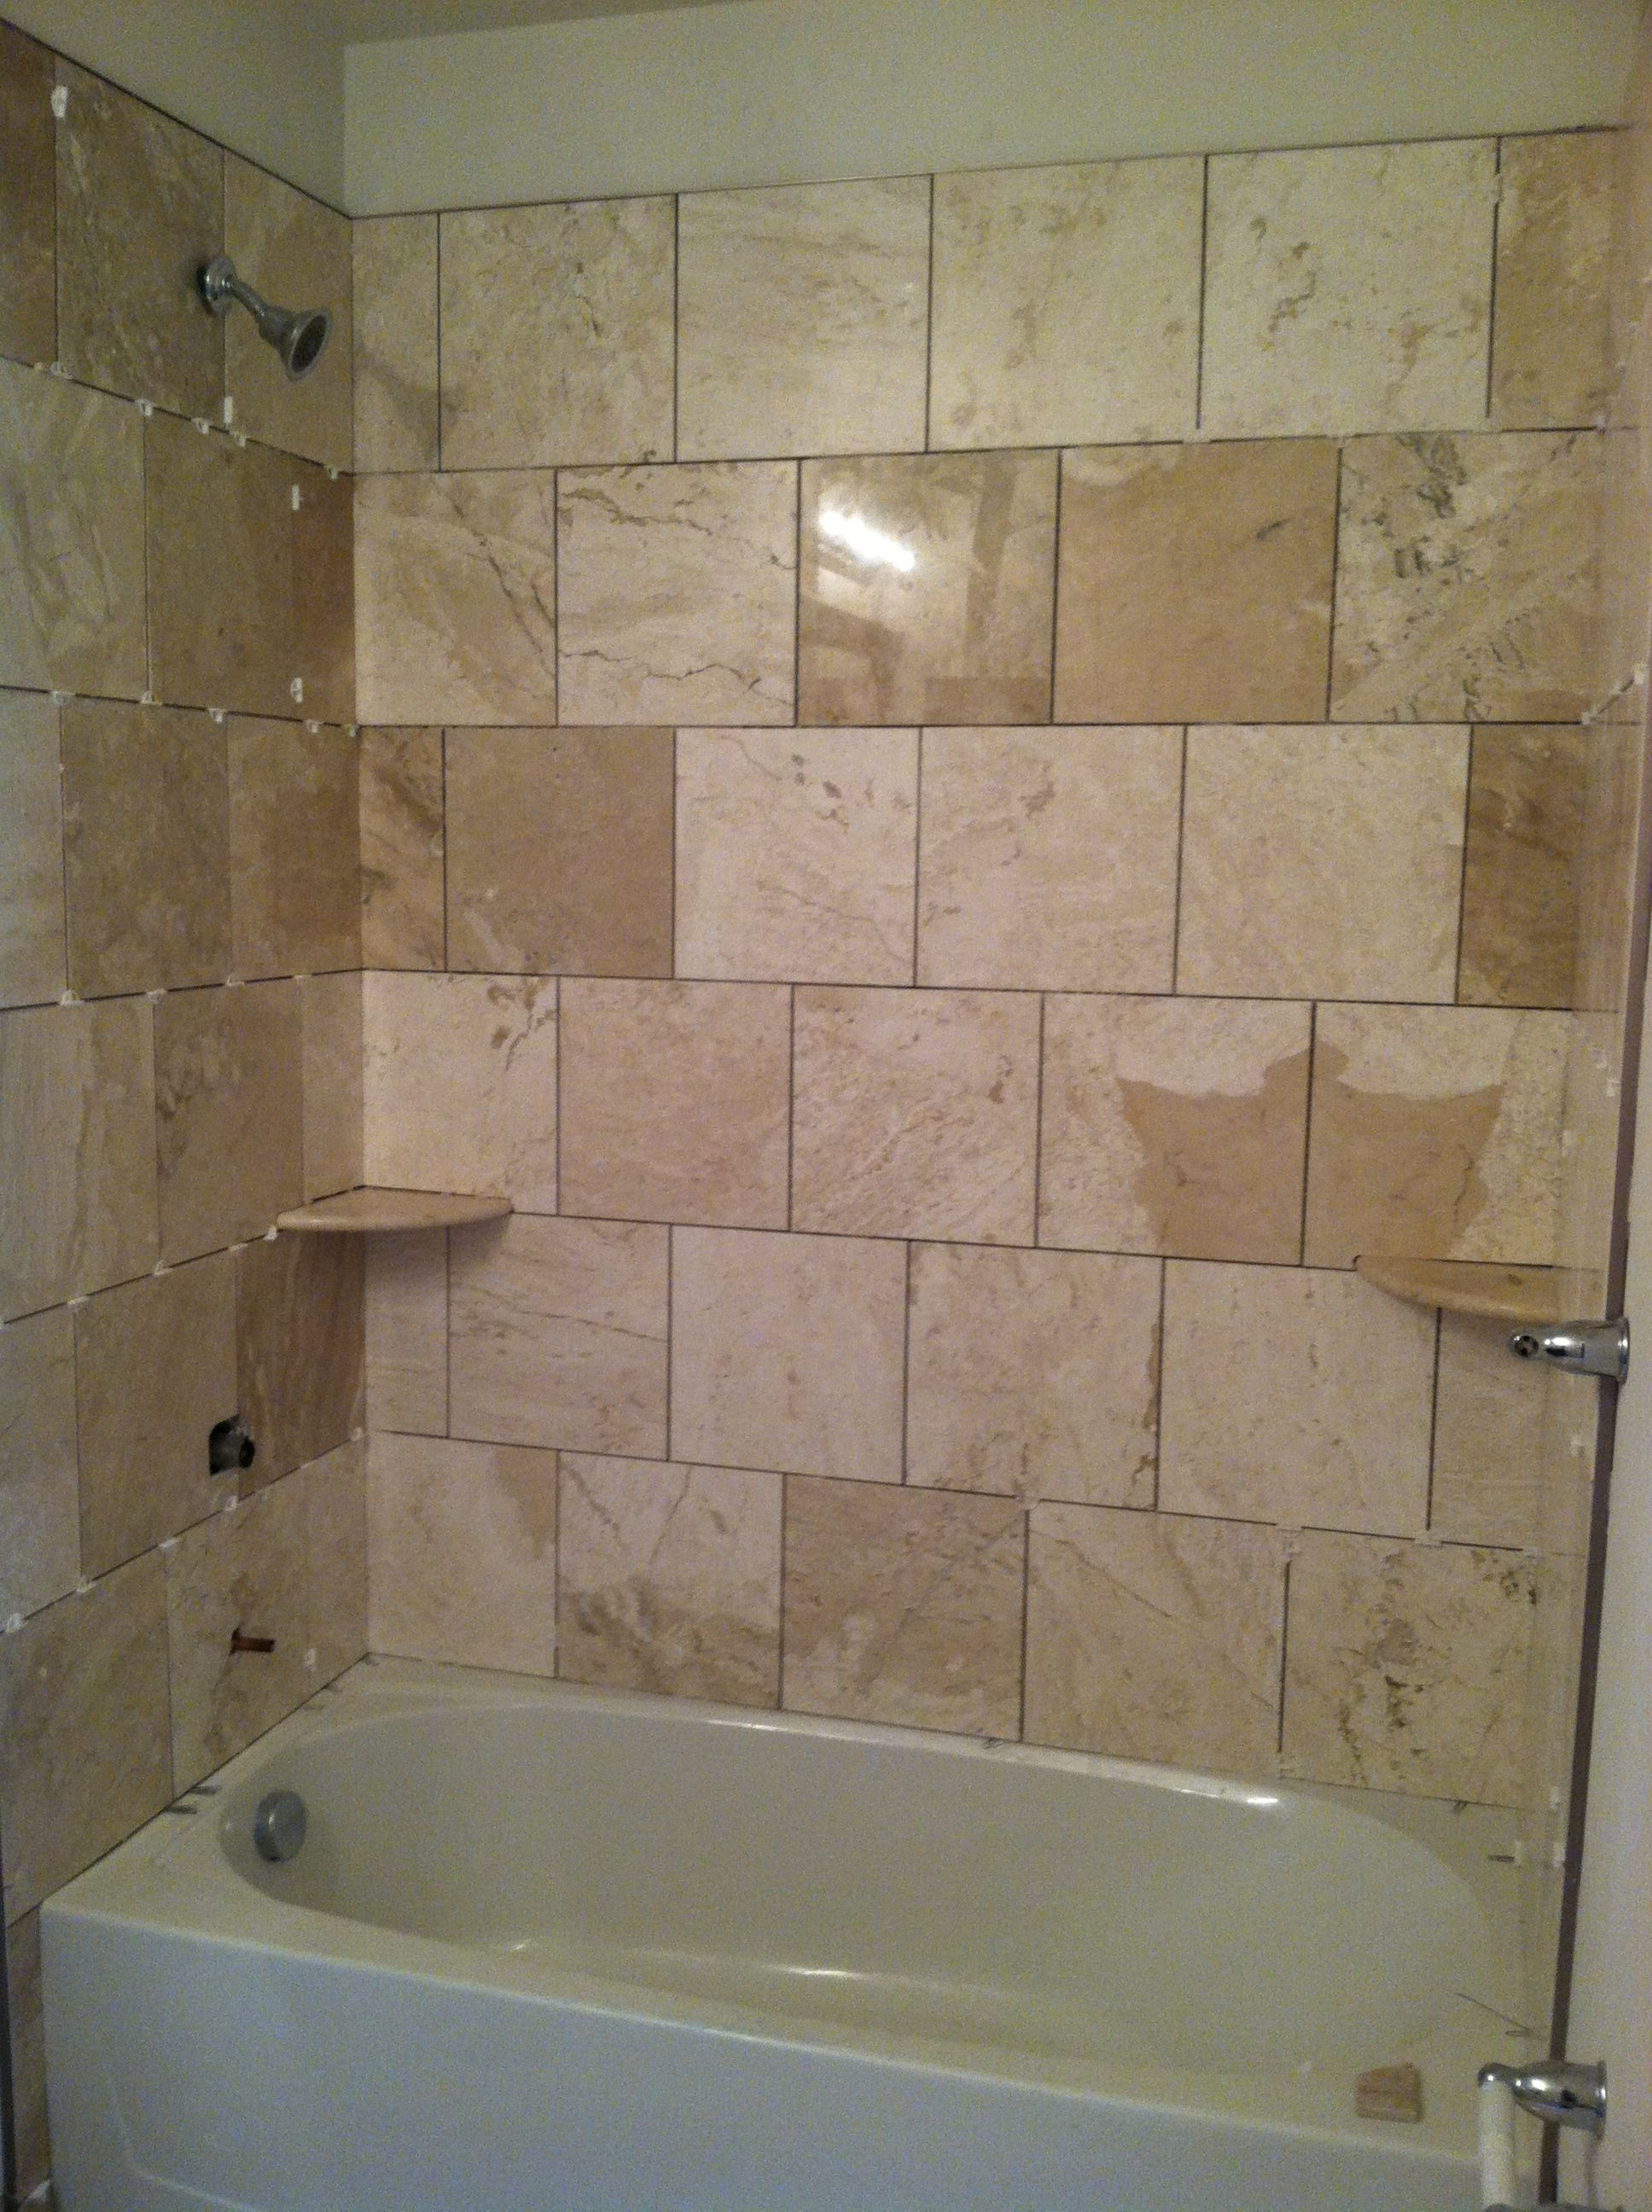 1000 images about tile shower on pinterest tiled showers tile showers and small tile shower